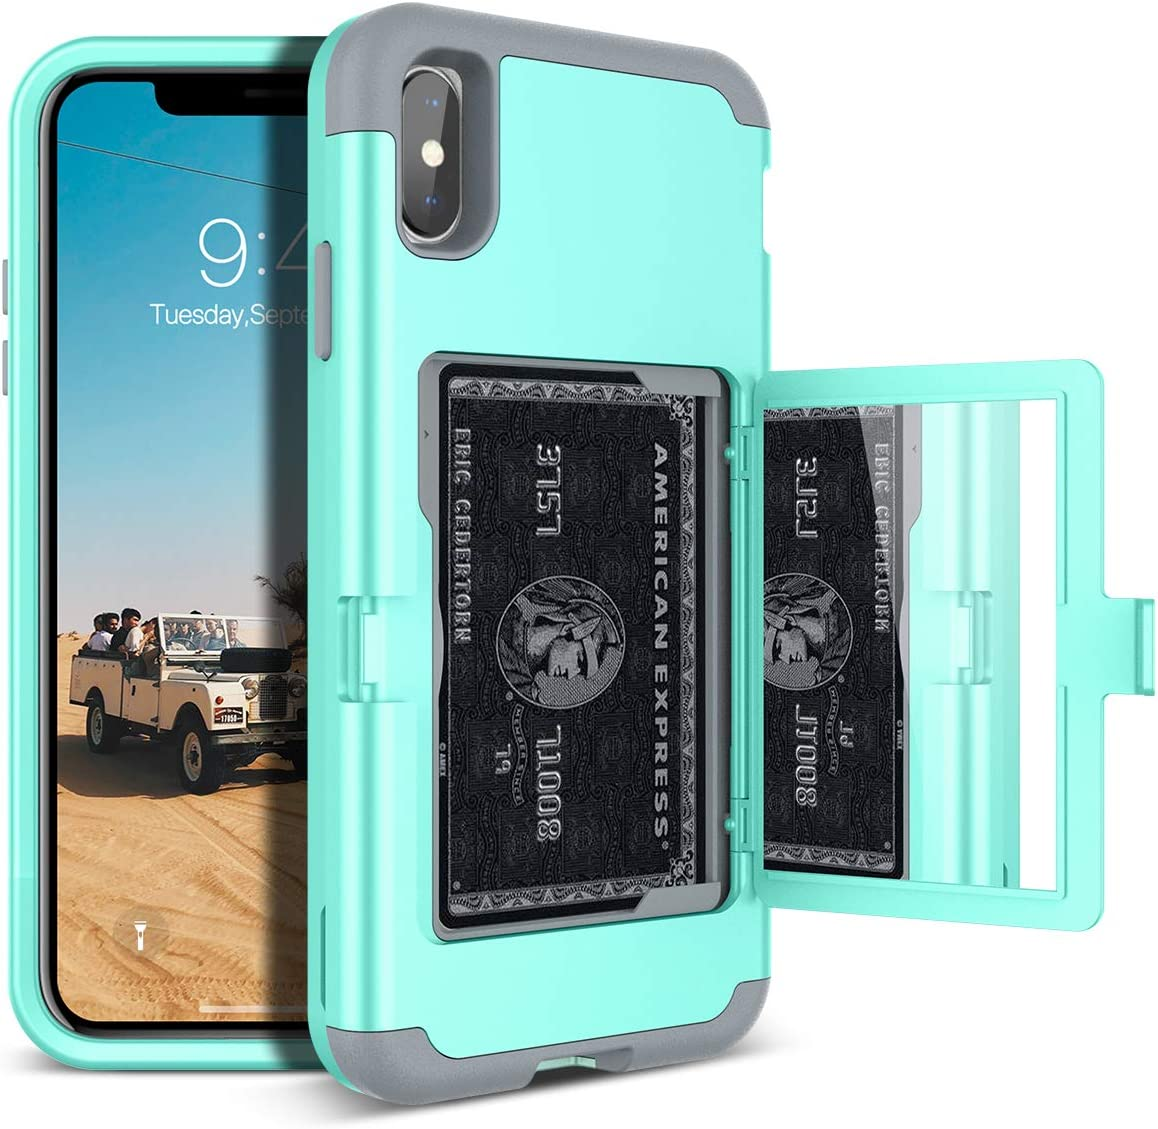 iPhone Xs Max Wallet Case - WeLoveCase Defender Wallet Card Holder Cover with Hidden Back Mirror Heavy Duty Protection Three Layer Shockproof Armor Full Protective Case for iPhone Xs Max - Mint